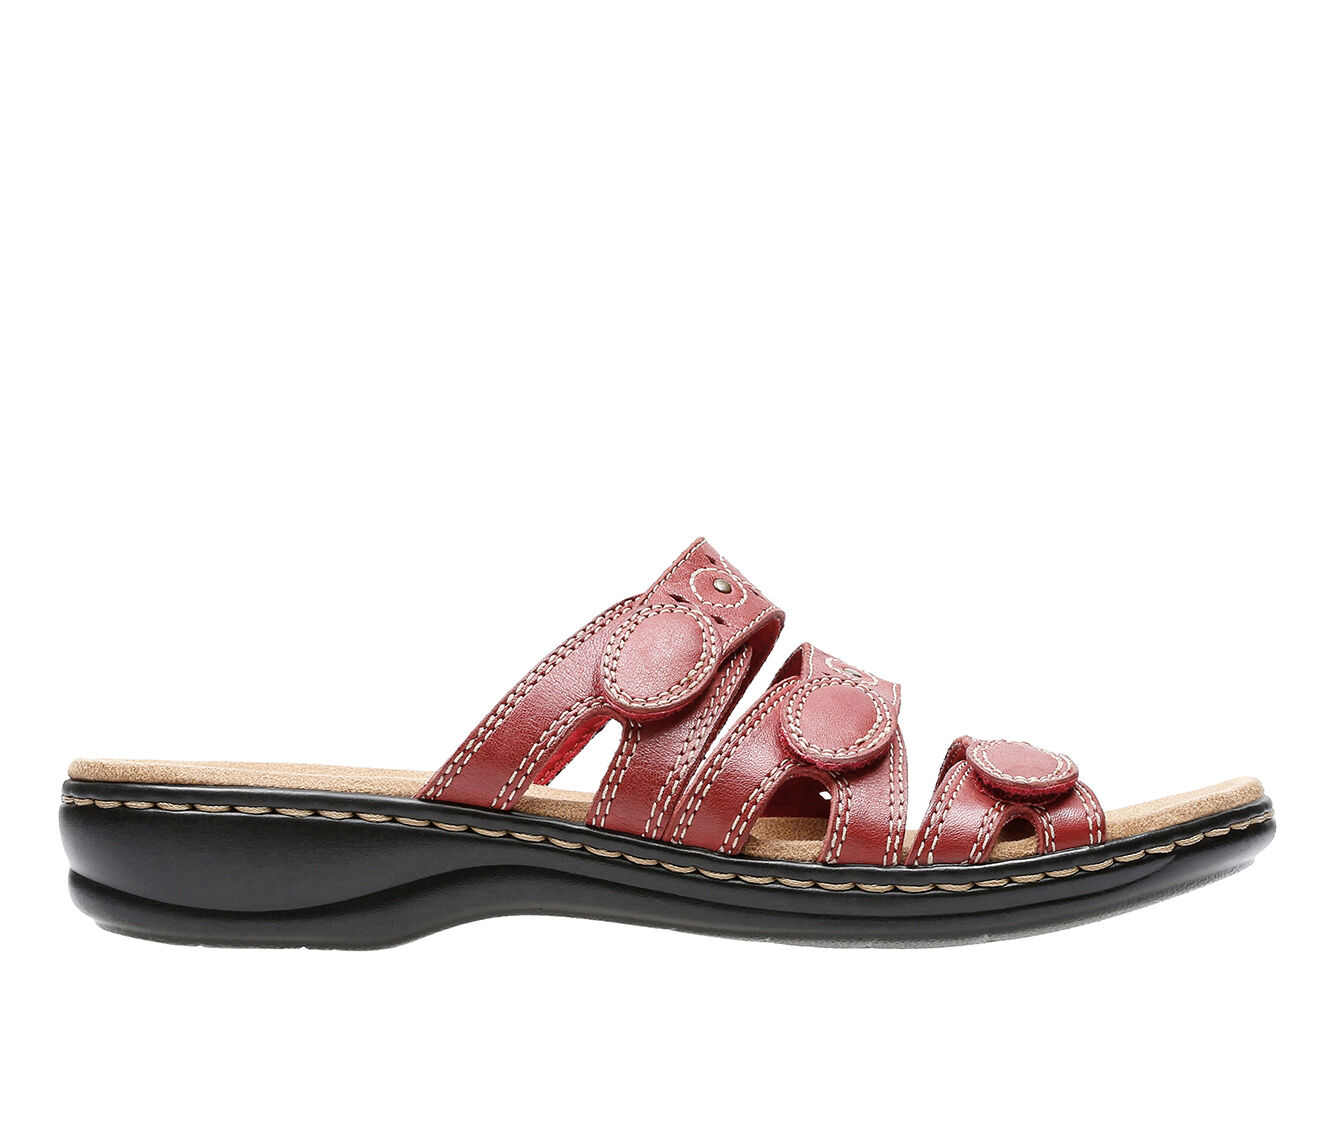 Women's Clarks Leisa Cacti Sandals Red